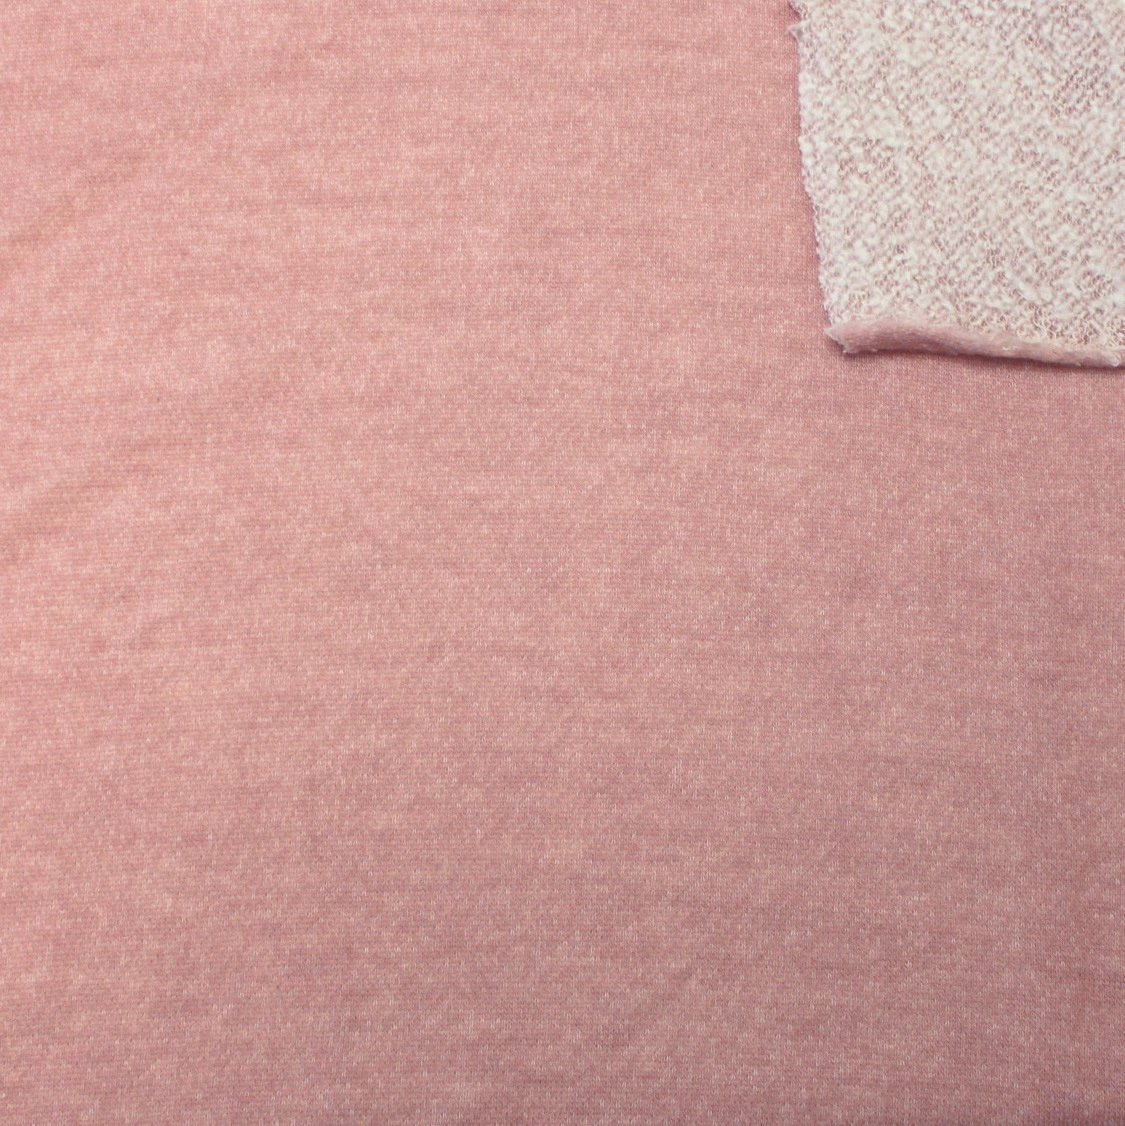 Dusty Mauve Brushed Heathered French Terry Knit Fabric, 1 Yard PRE-ORDER - Raspberry Creek Fabrics